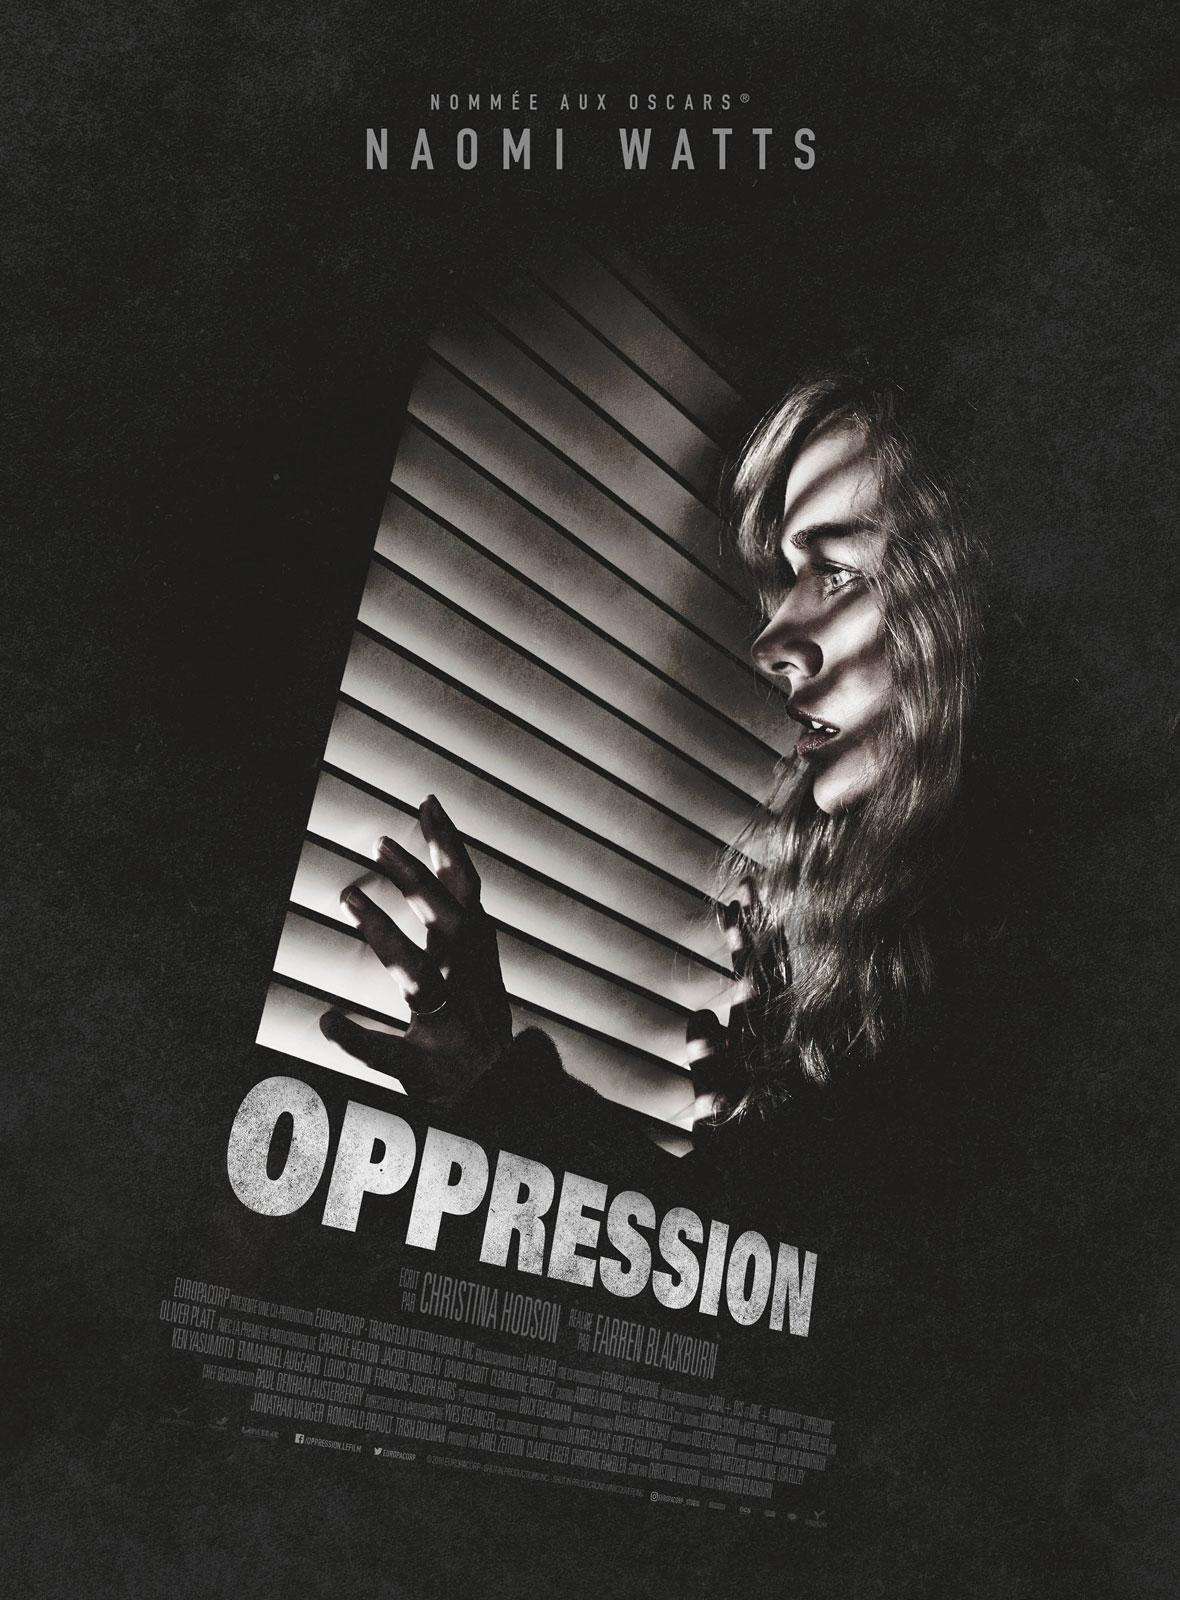 Oppression (Shut In)